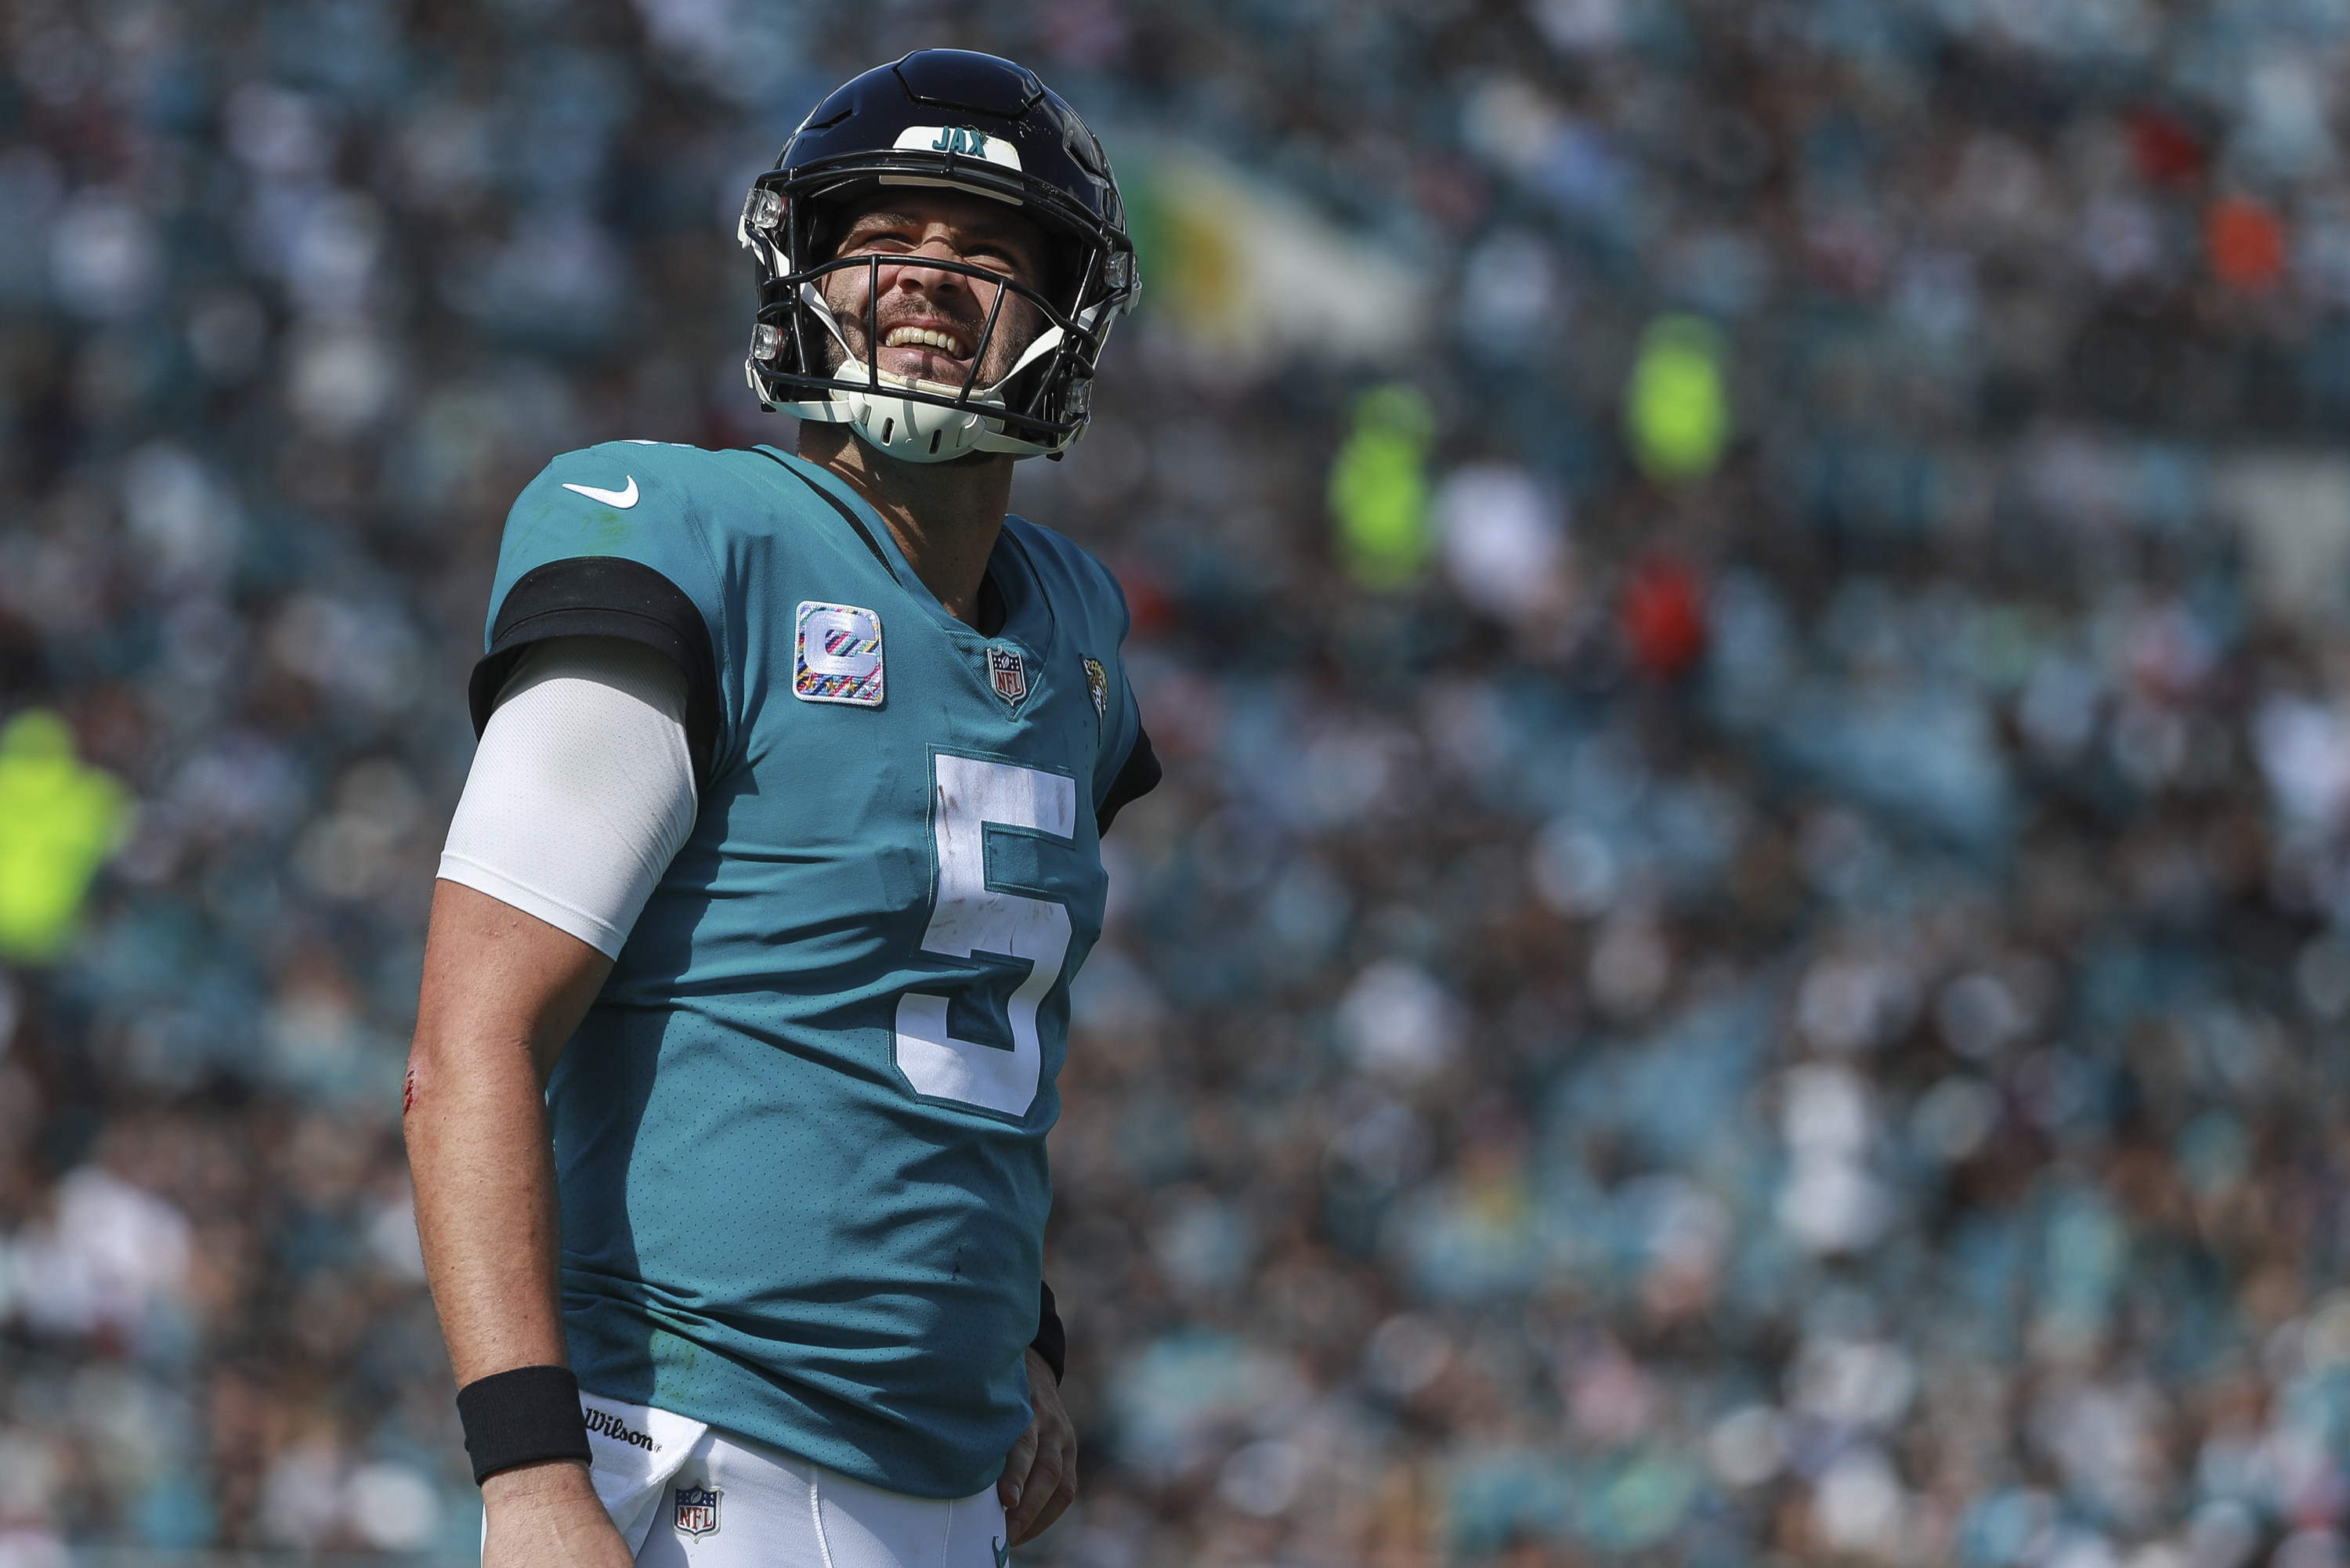 d7d2ff9d Bortles Out, Kaepernick In? Jaguars Need a Real QB to Save Once ...